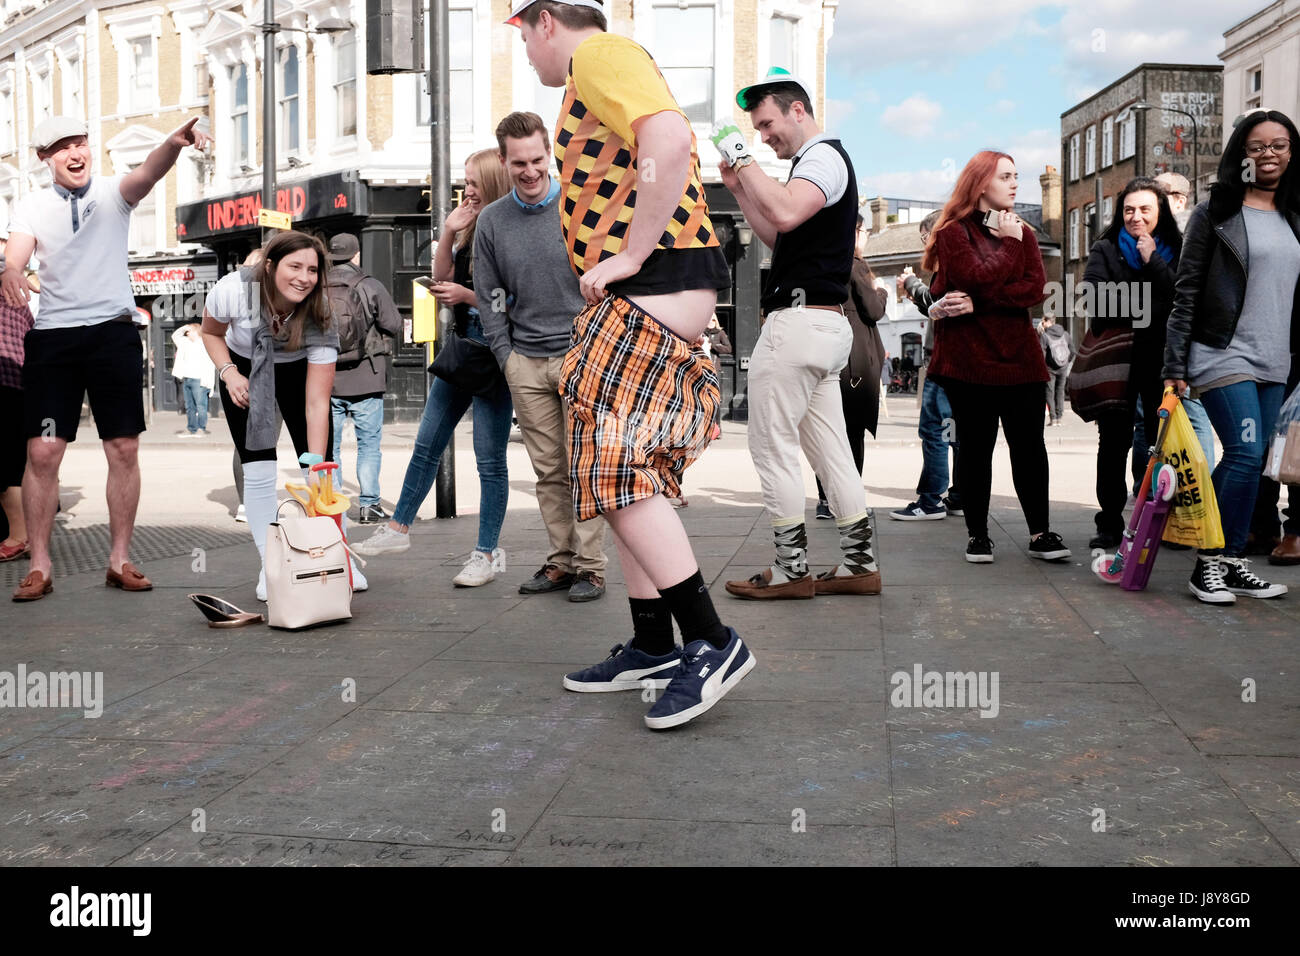 A man pulls down his shorts in Camden Town - Stock Image